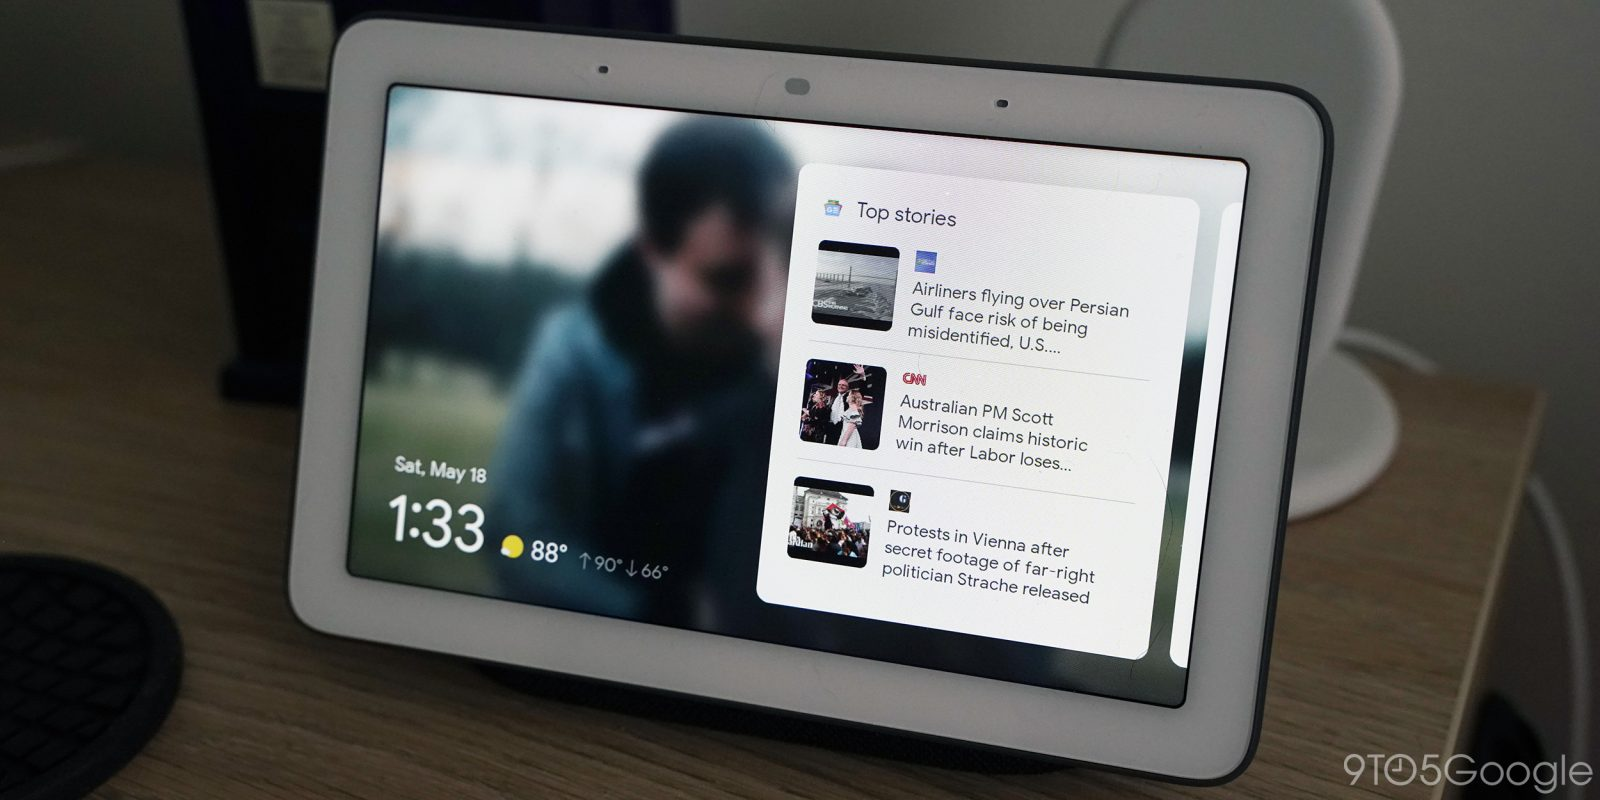 Google rolling out new Smart Display UI and homescreen